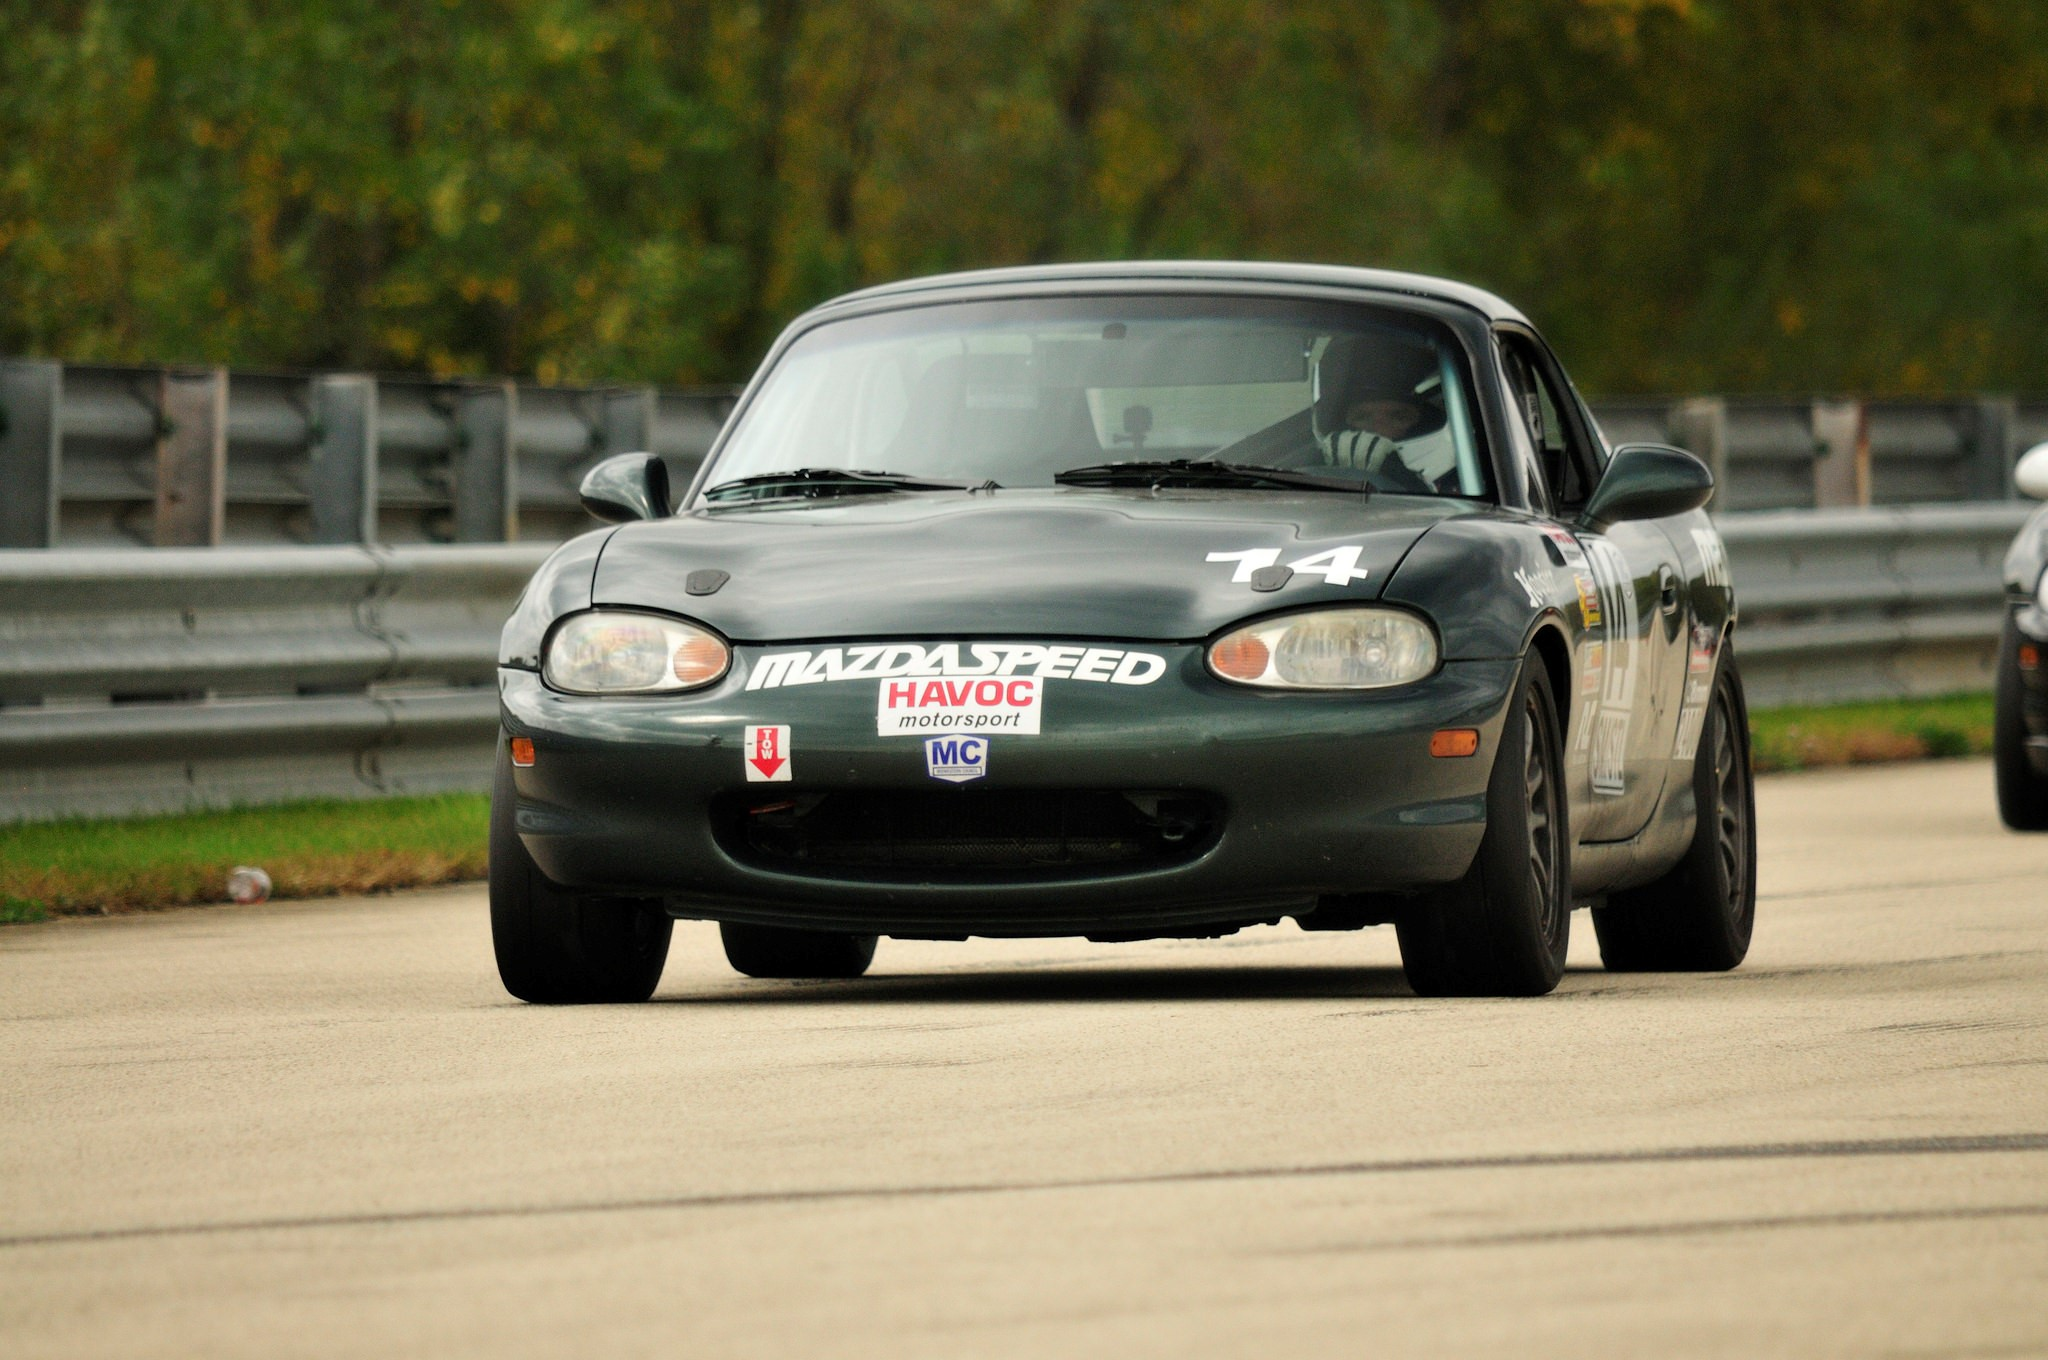 Spec Miata For Sale >> 1999 Spec Miata For Sale Autobahn Country Club Member Site